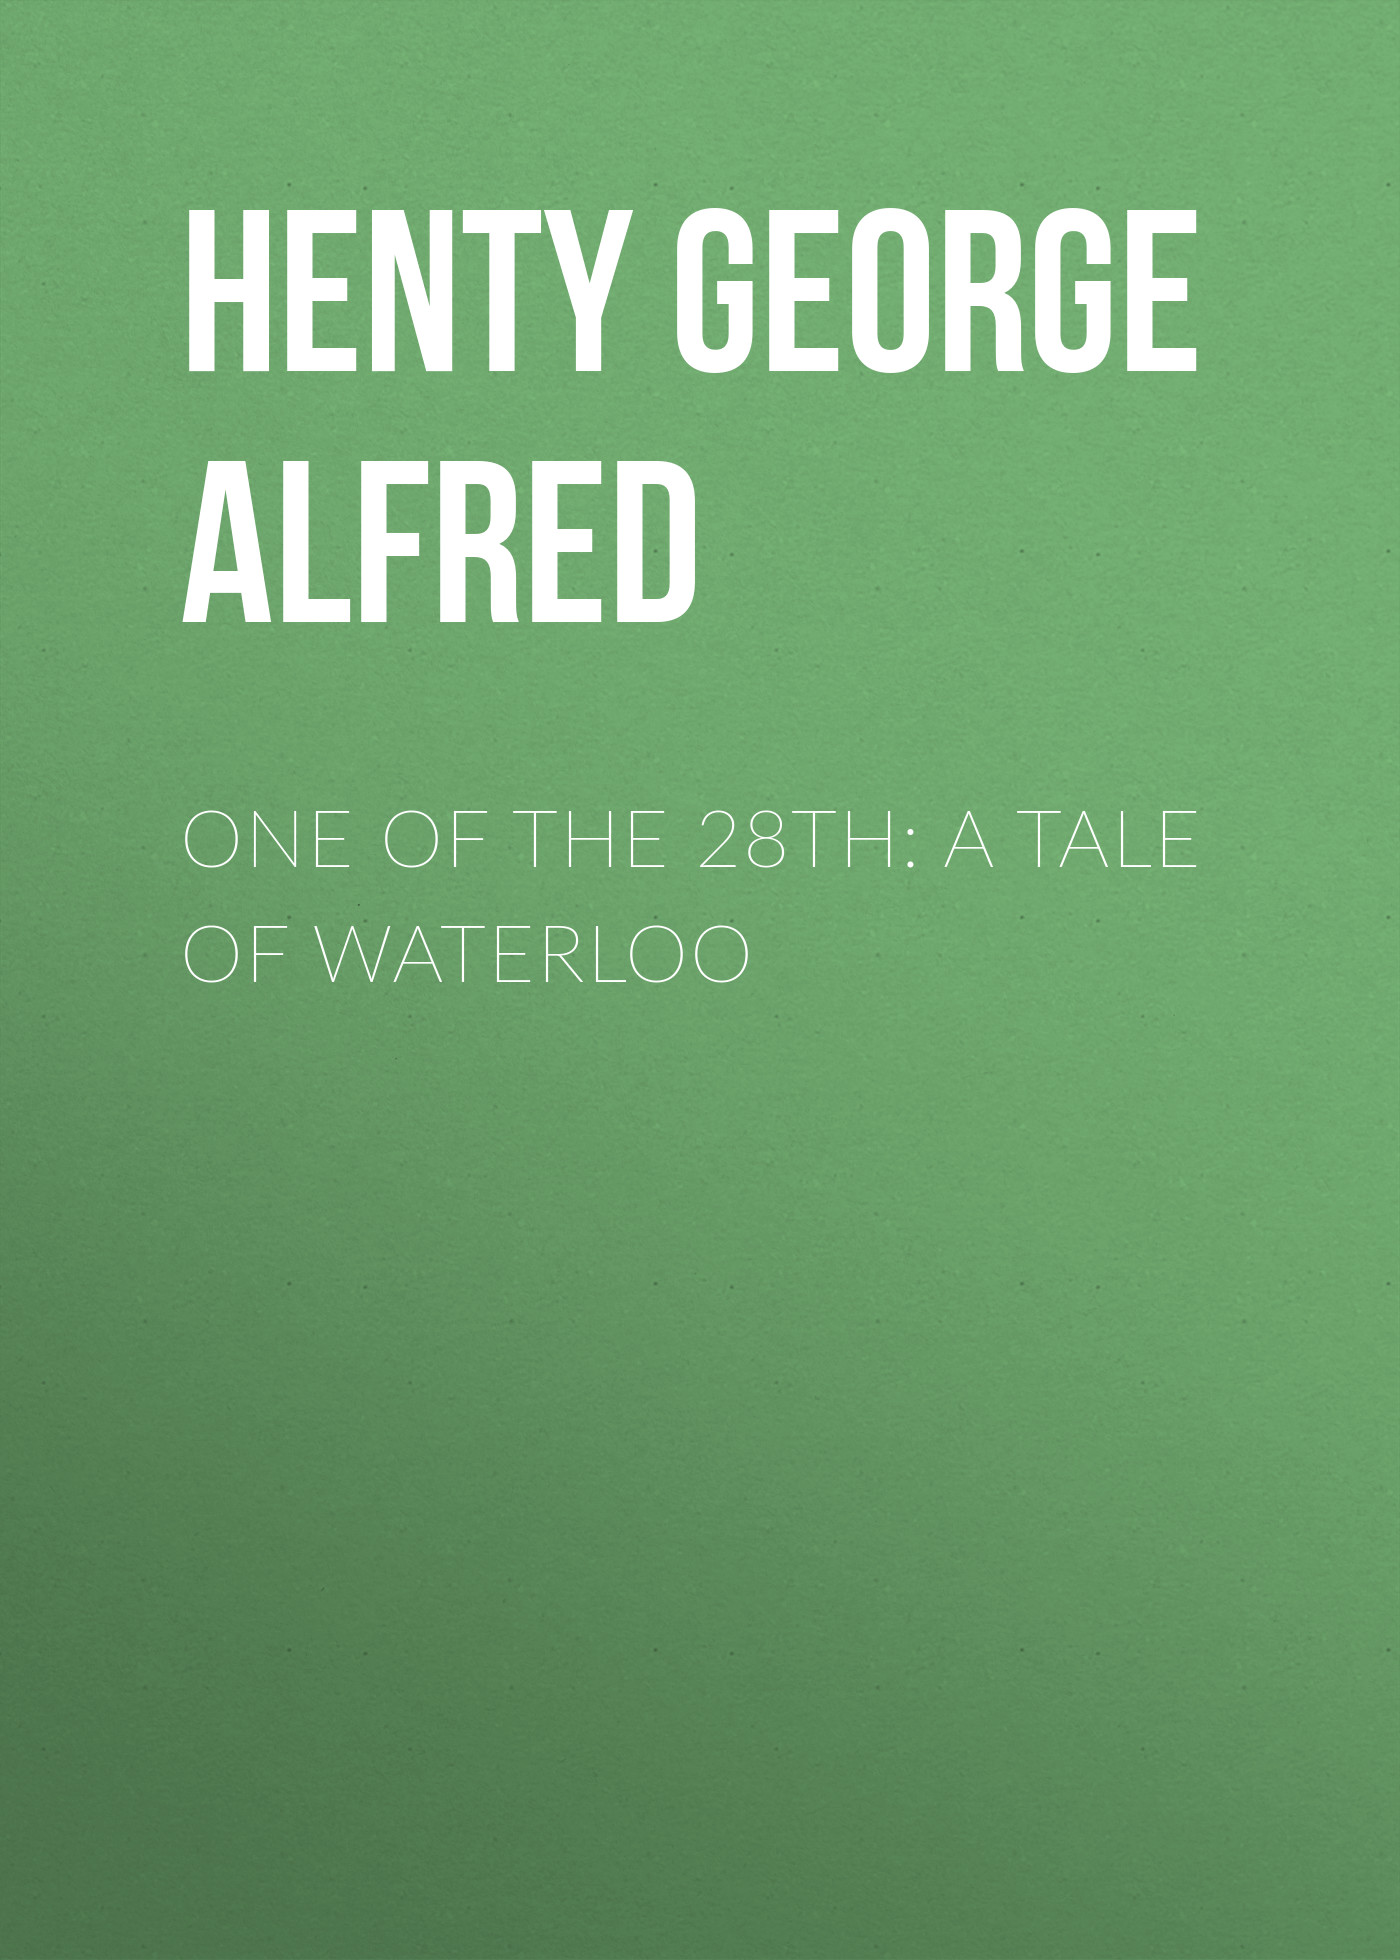 Henty George Alfred One of the 28th: A Tale of Waterloo henty george alfred the curse of carne s hold a tale of adventure